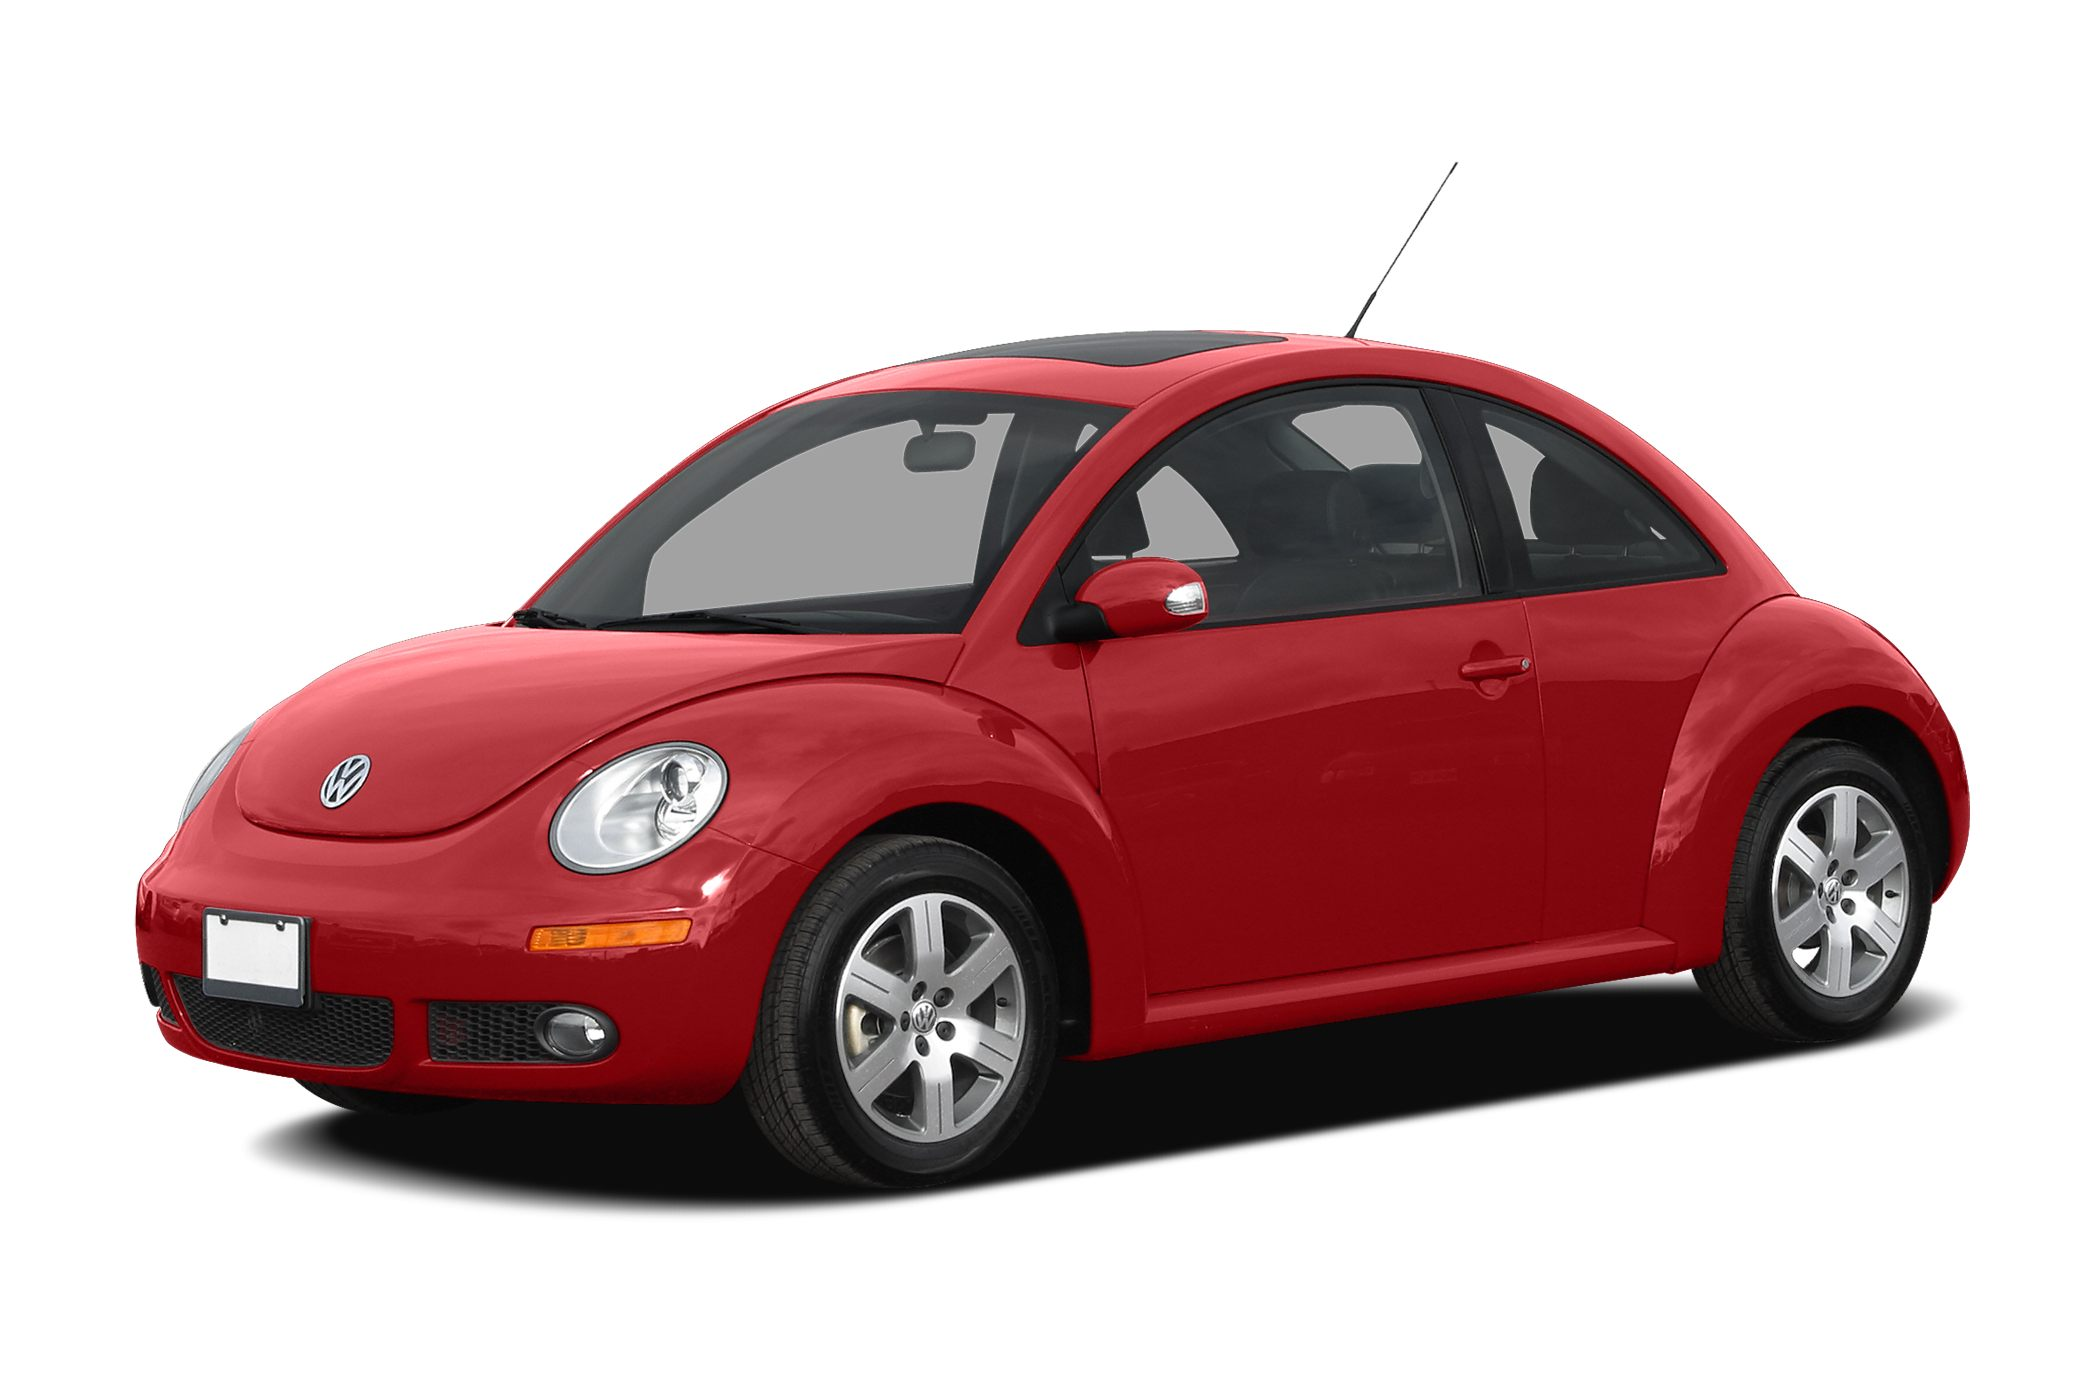 2007 Volkswagen New Beetle 2.5 Hatchback for sale in Scottsdale for $7,950 with 82,251 miles